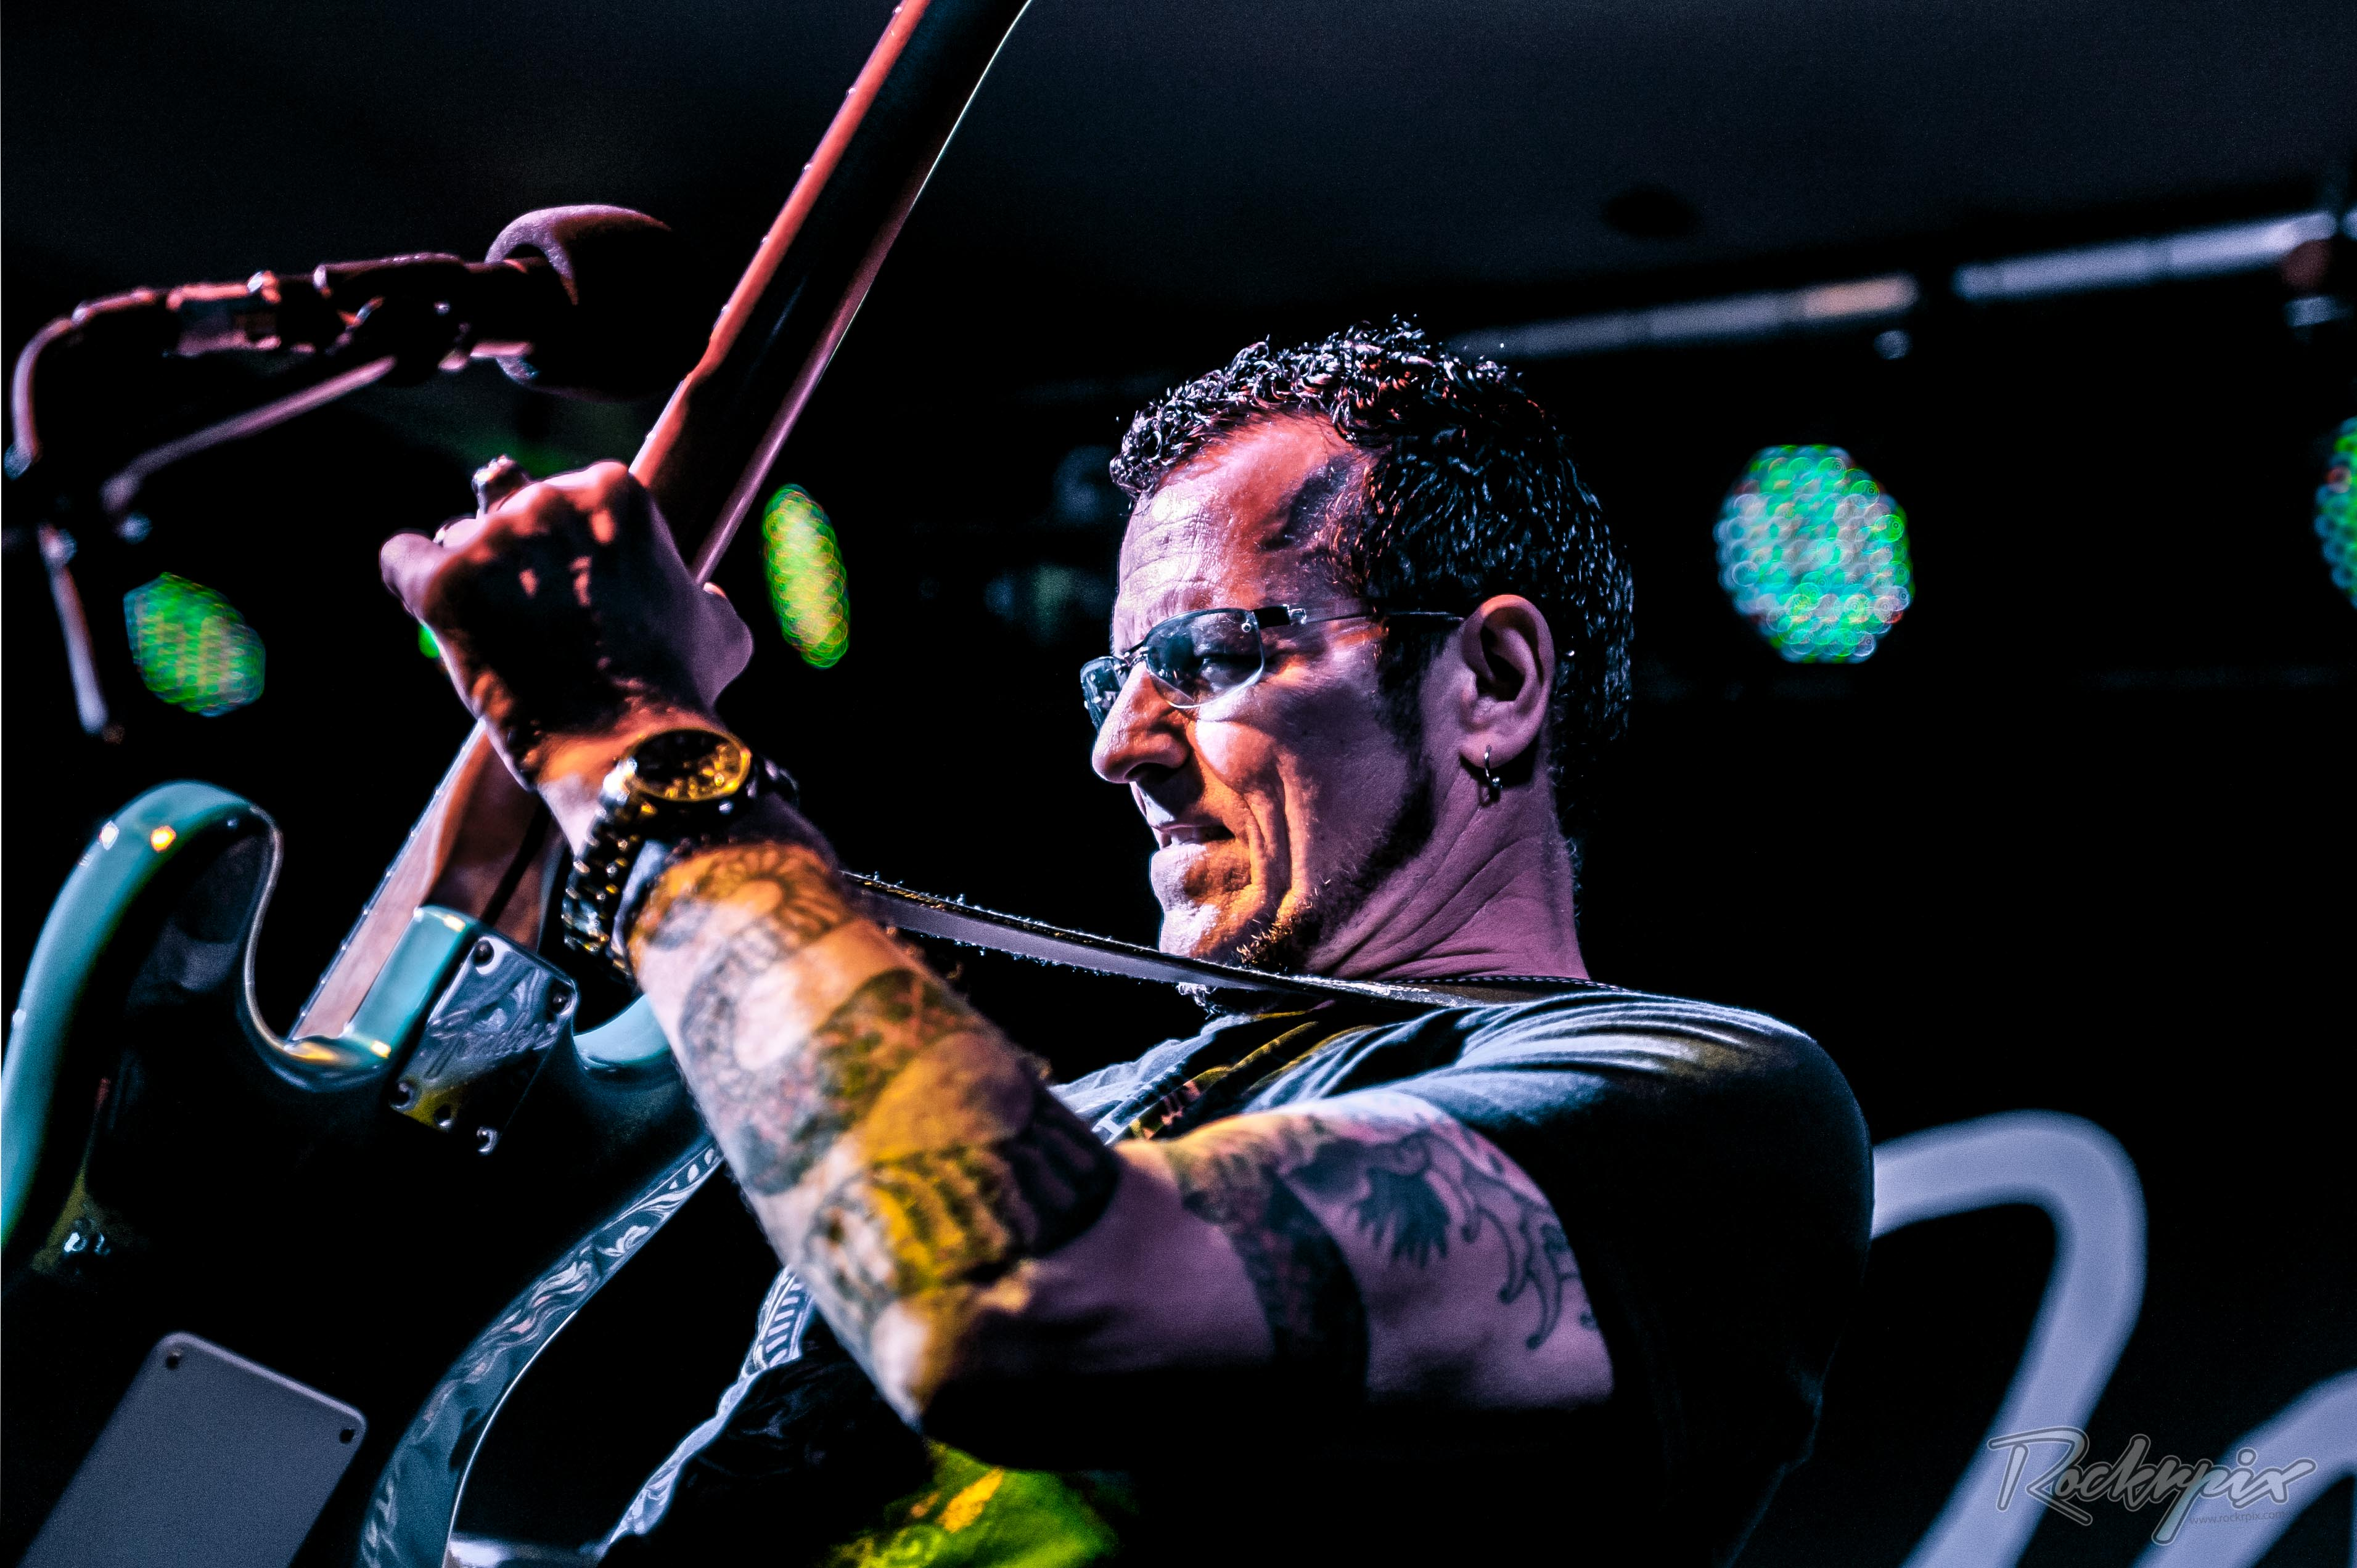 Gary Hoey by Rockrpix